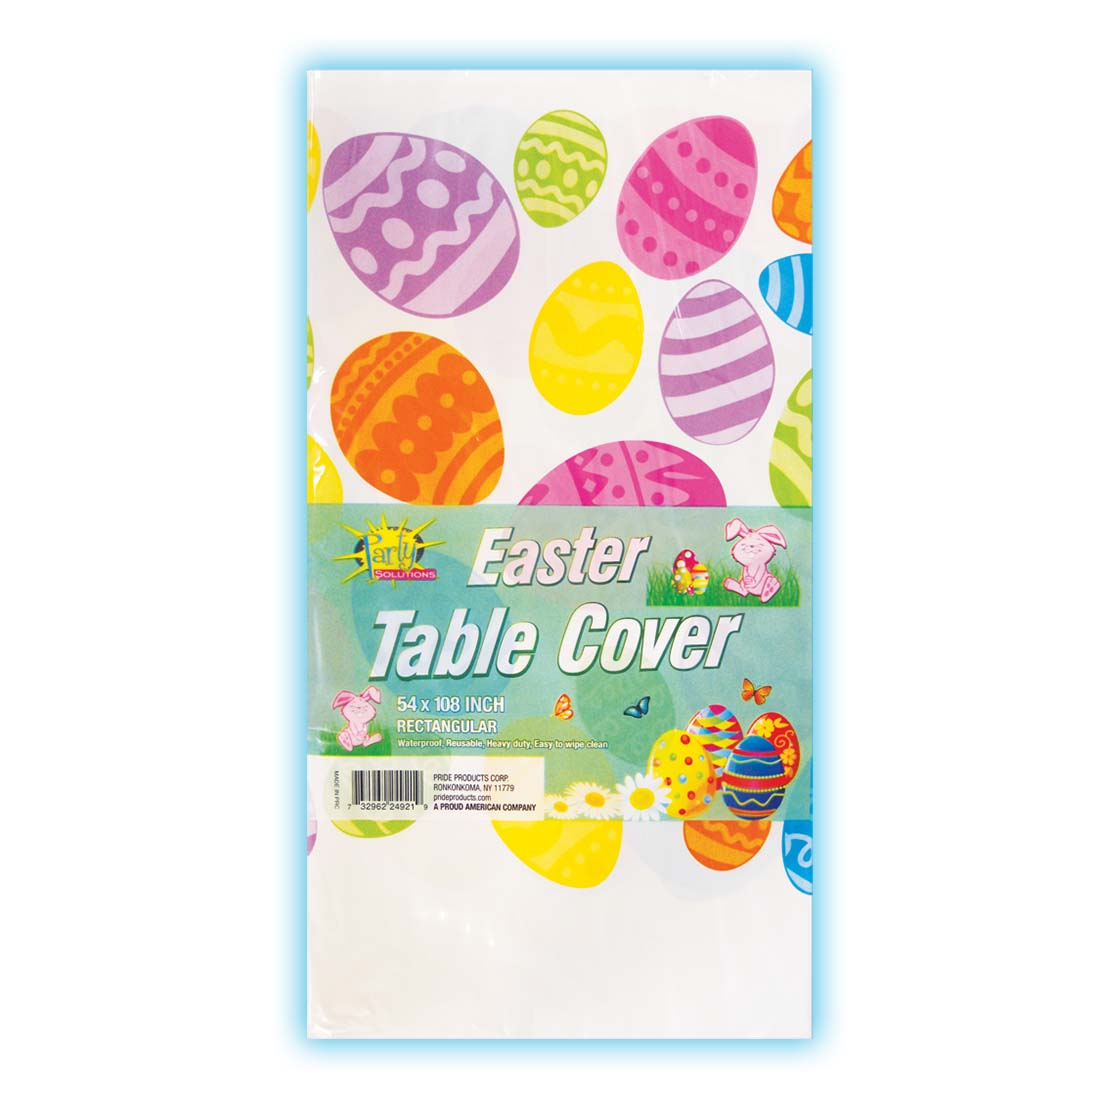 View PLASTIC TABLE COVER 54 X 108 INCH EASTER